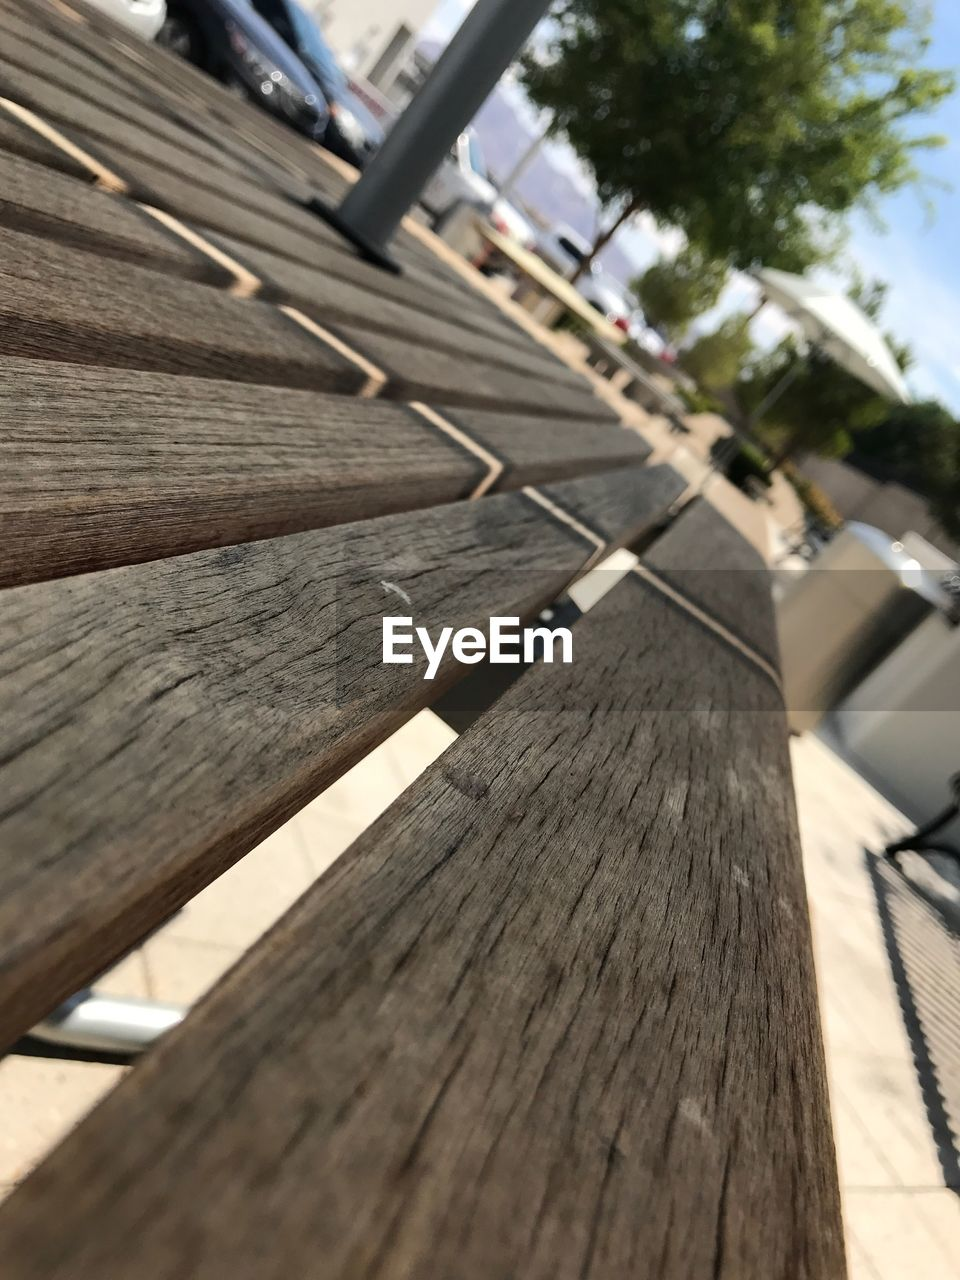 wood - material, plank, wood paneling, day, outdoors, focus on foreground, no people, built structure, sunlight, close-up, tree, architecture, building exterior, nature, sky